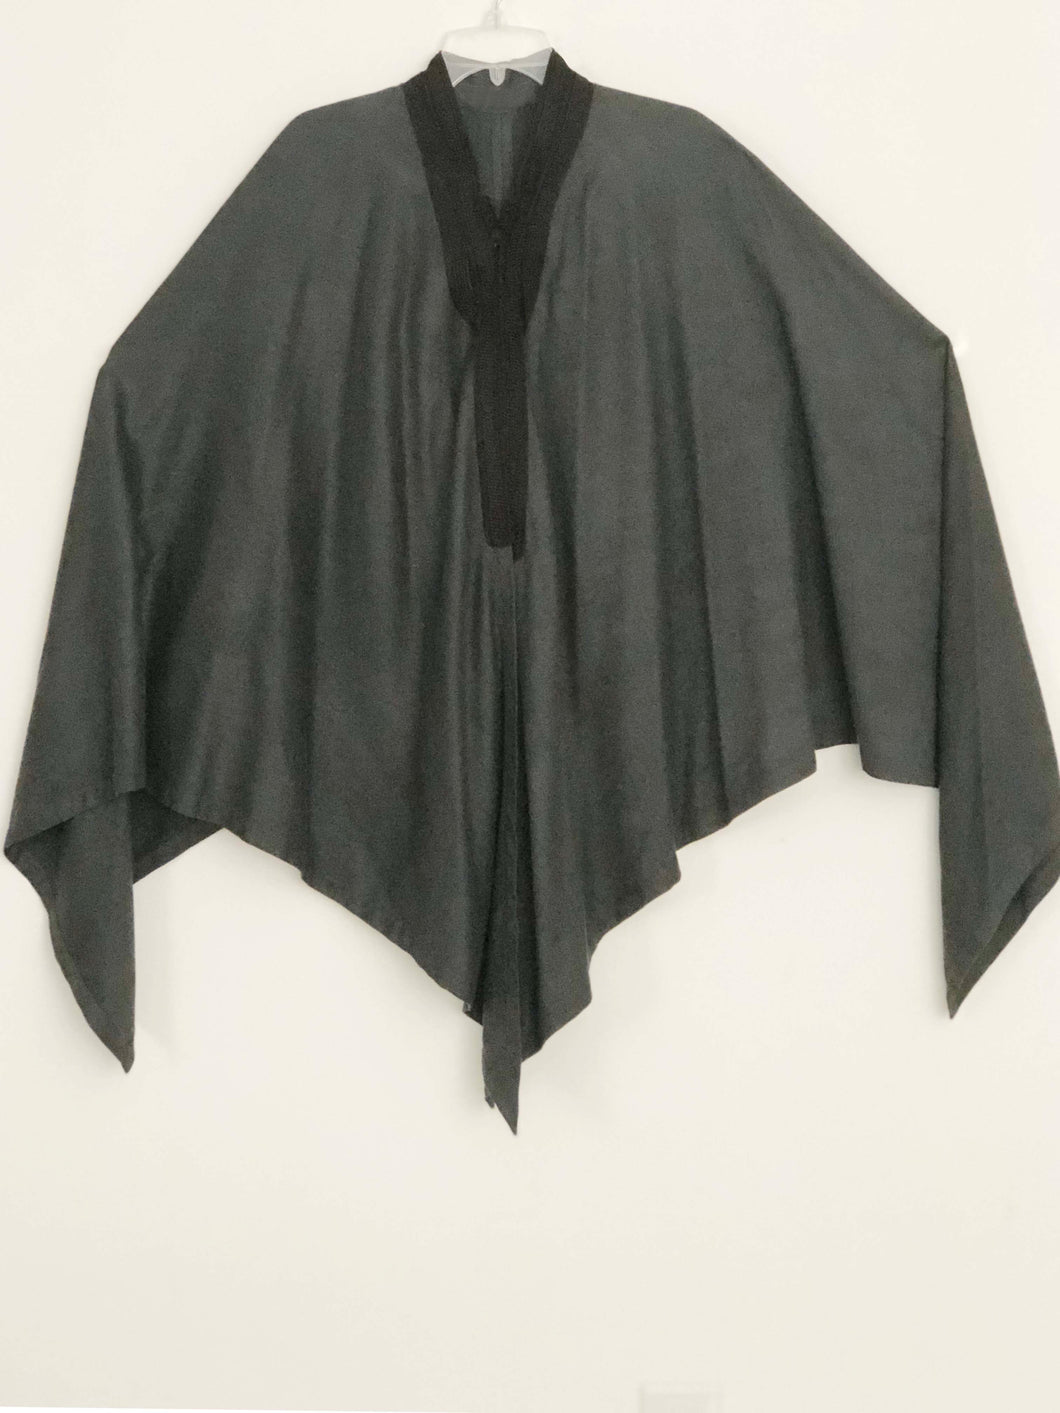 Vintage Luxurious gray Cape Poncho Jacket One Size lagenlook artsy art to wear